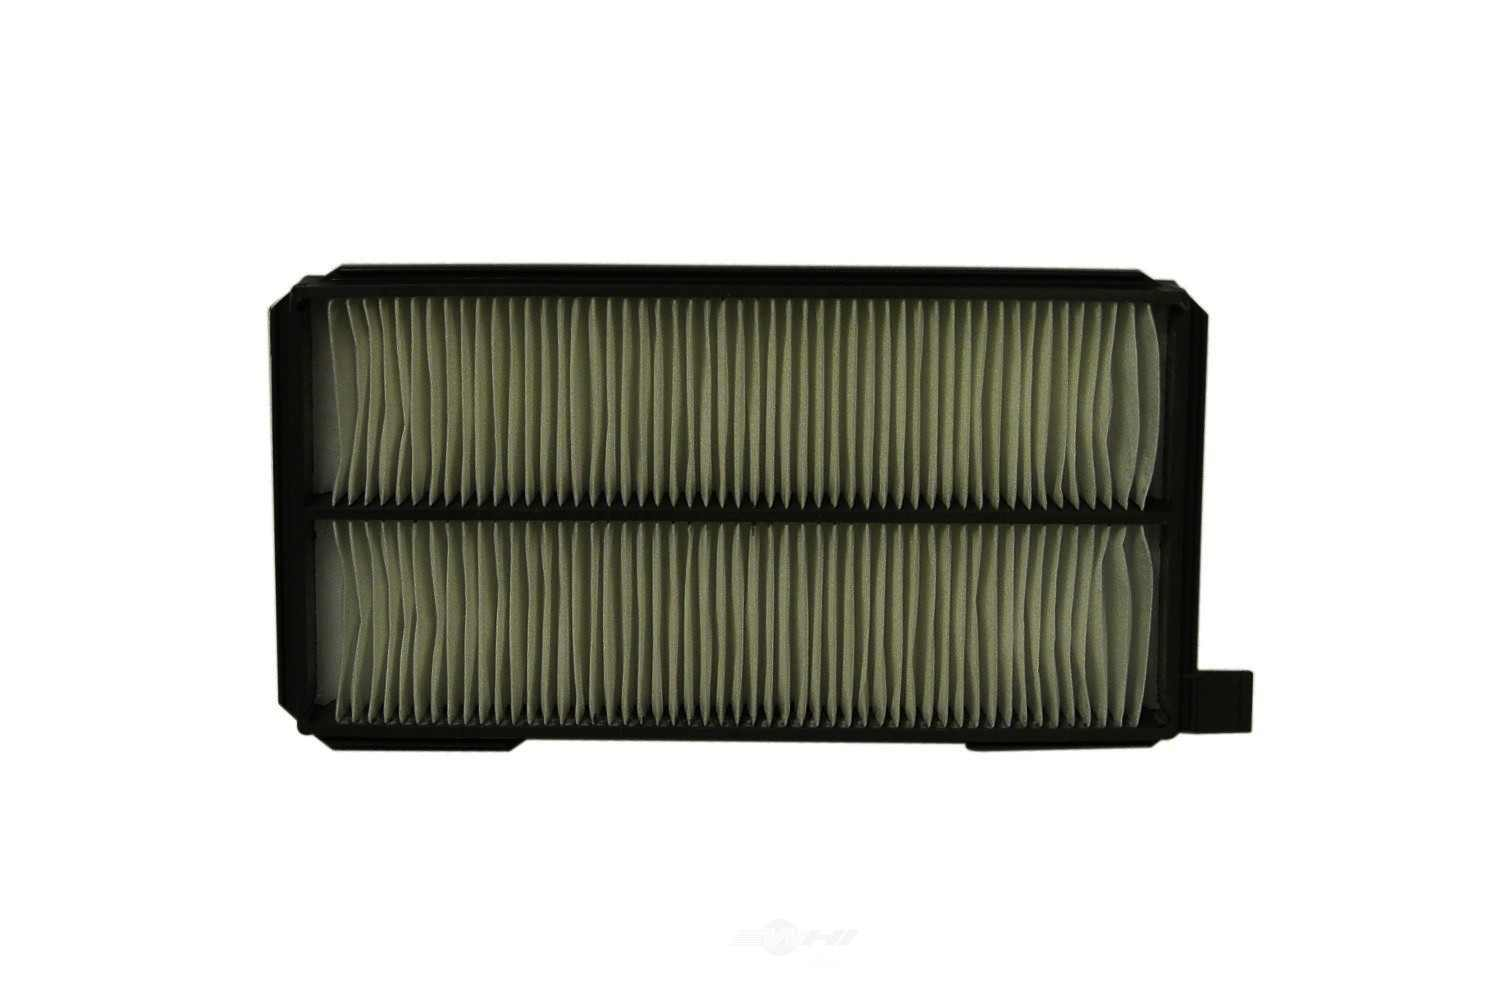 ACDELCO OE SERVICE CANADA - A/C Filter Screen - DCG 15-33303